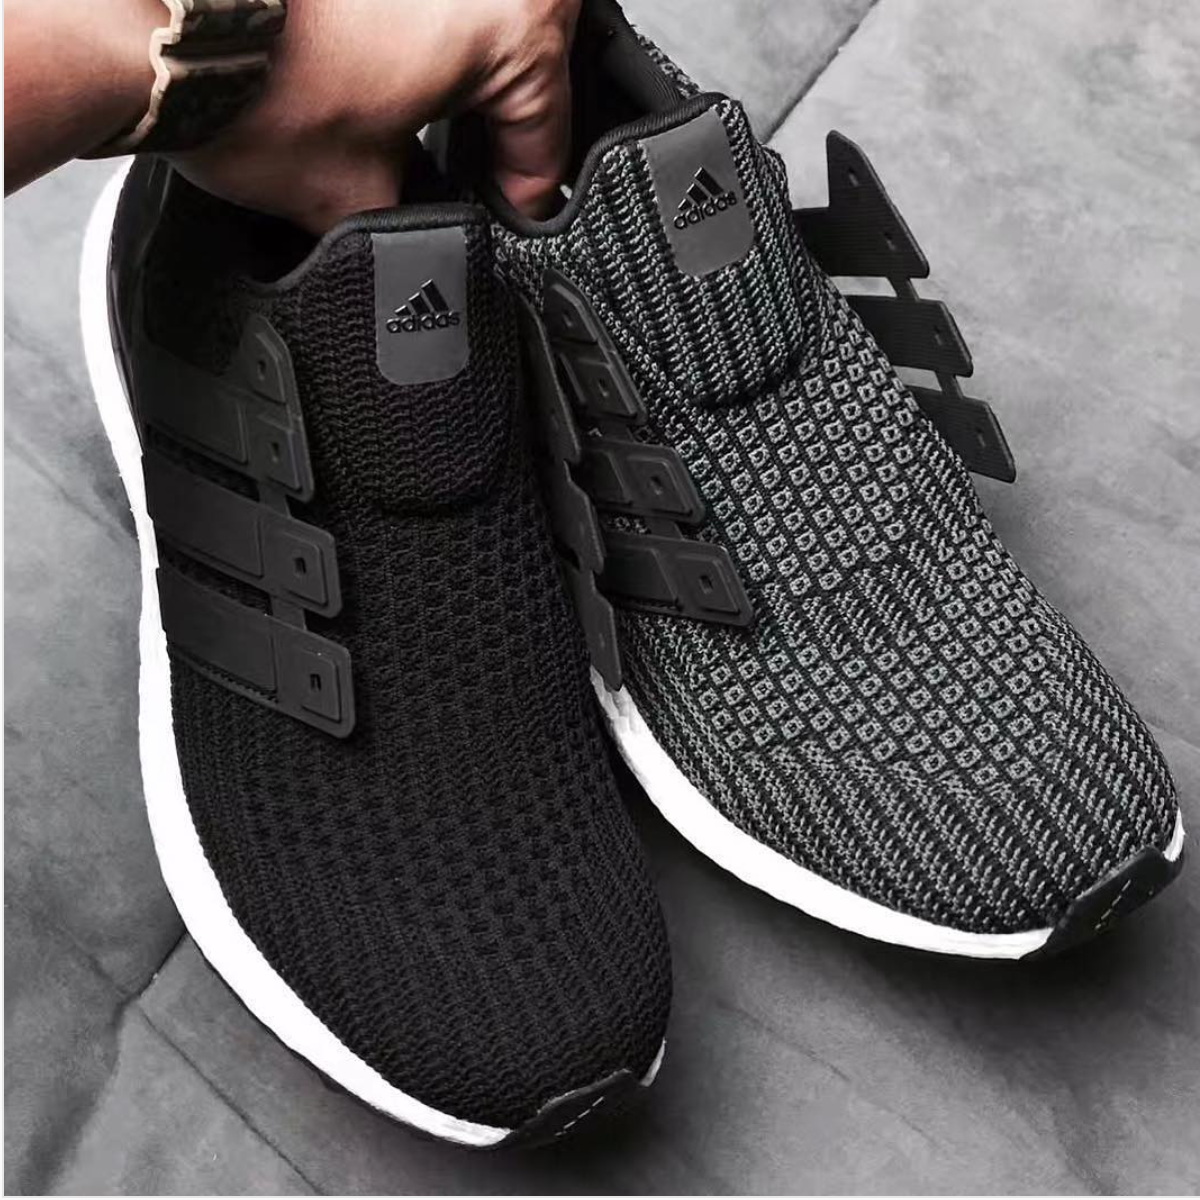 adidas Ultra Boost 4.0 could be dropping in December